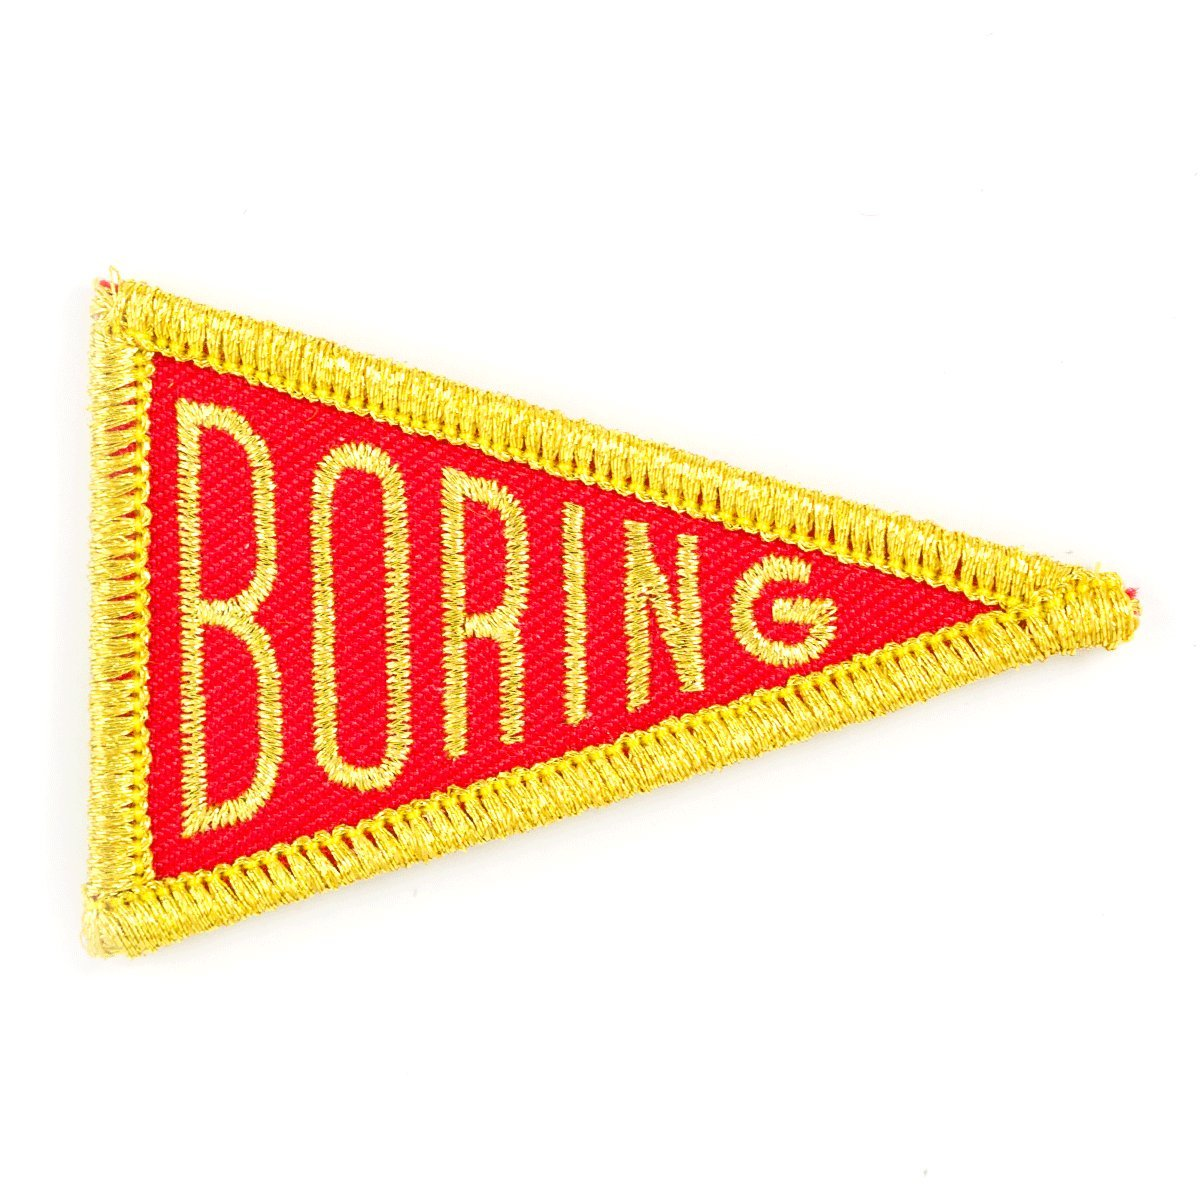 These Are Things Boring Embroidered Iron On Or Sew On Patch by These Are Things